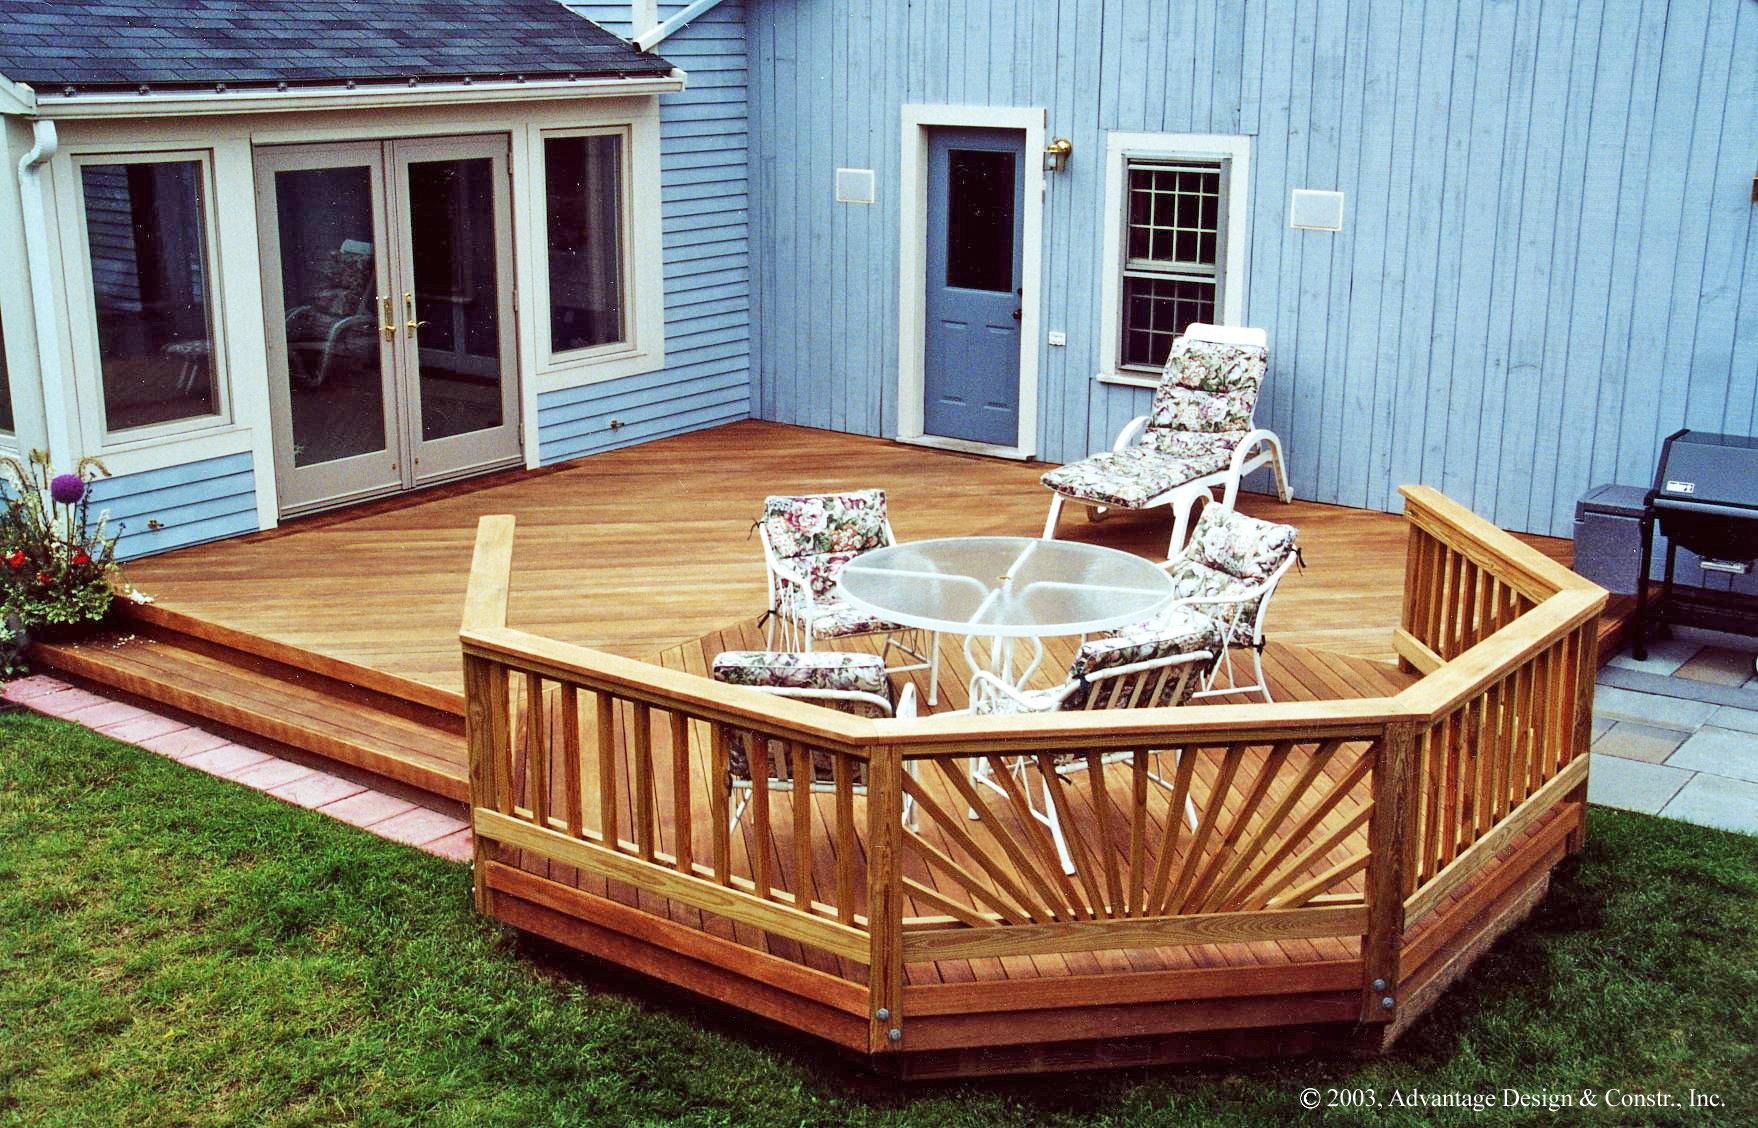 basch1 enh - Deck Vs Patio